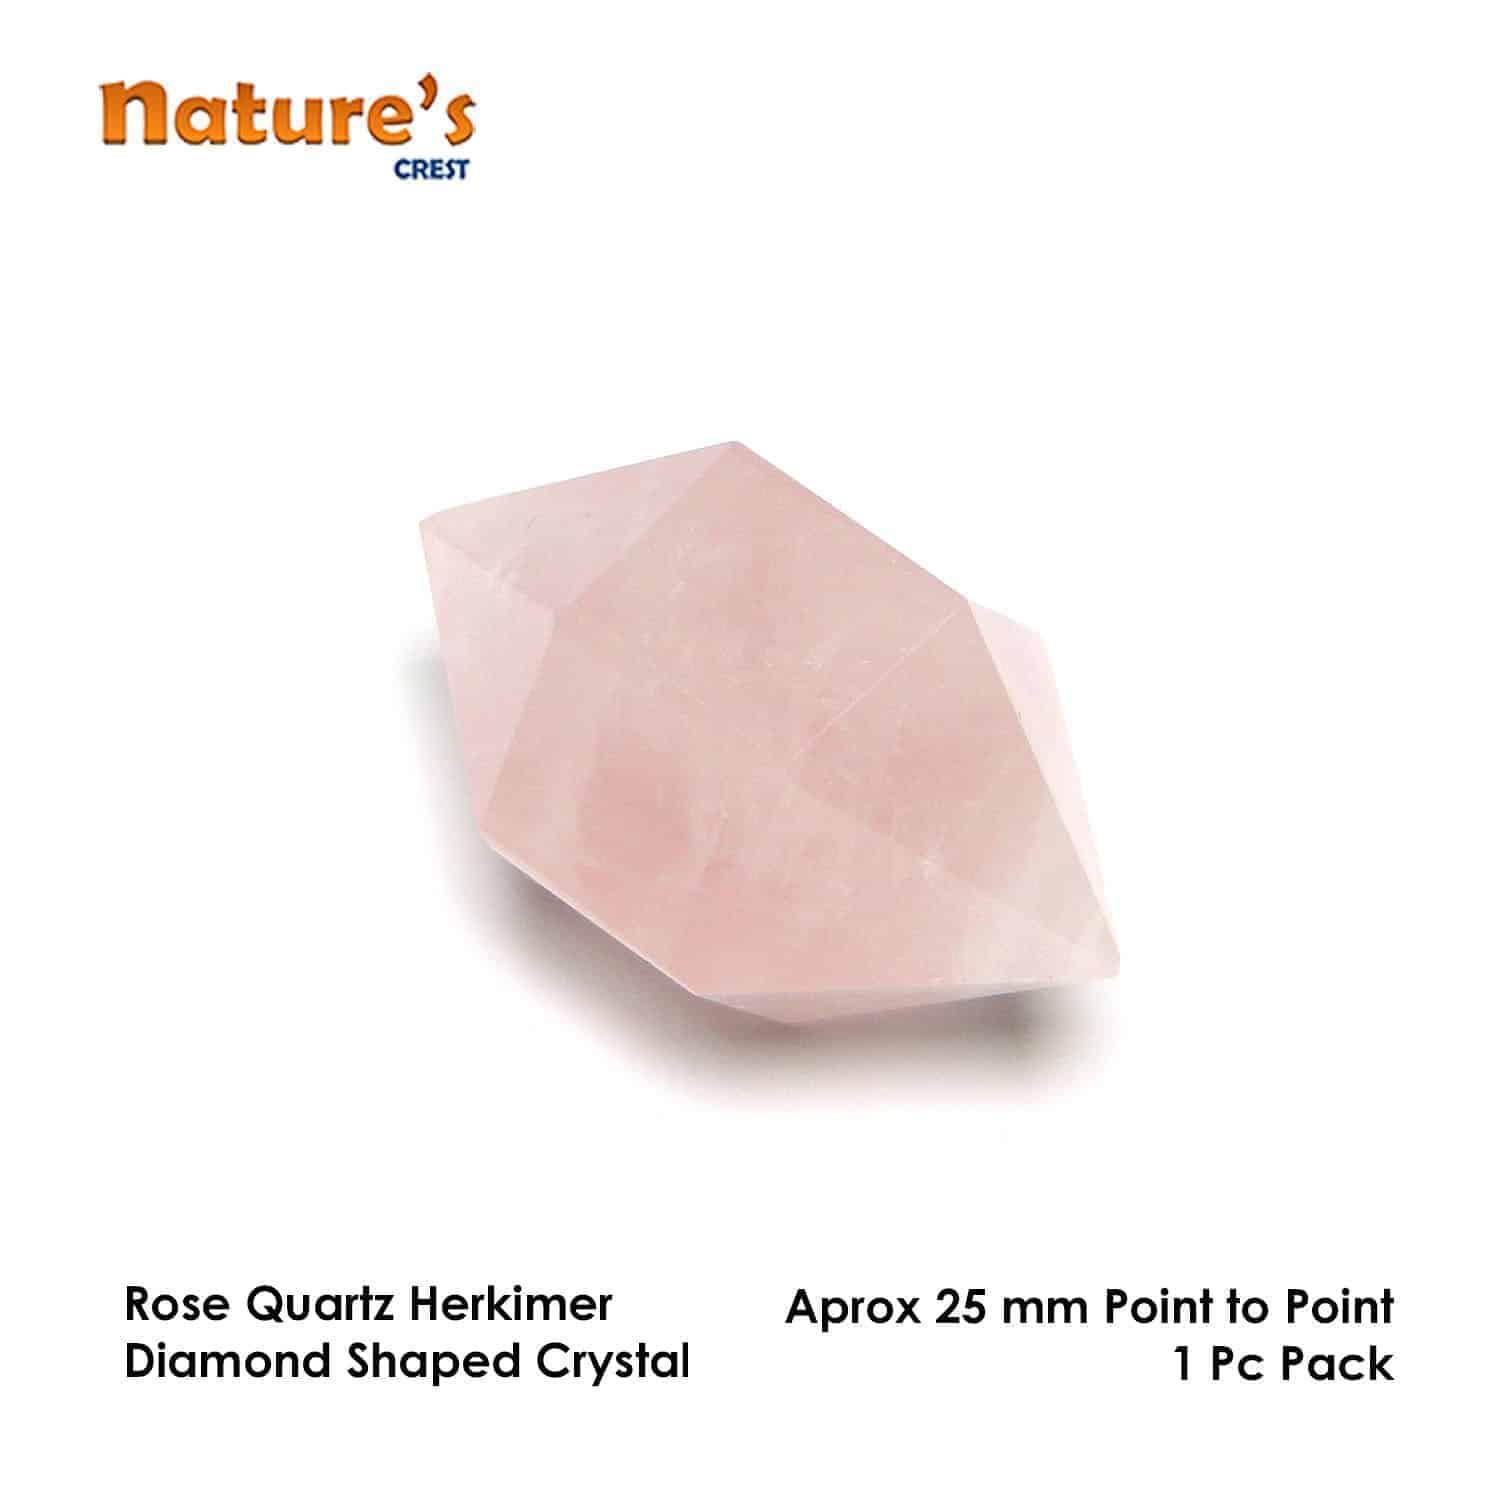 Rose Quartz Herkimer Diamond Nature's Crest HCP003 ₹ 299.00